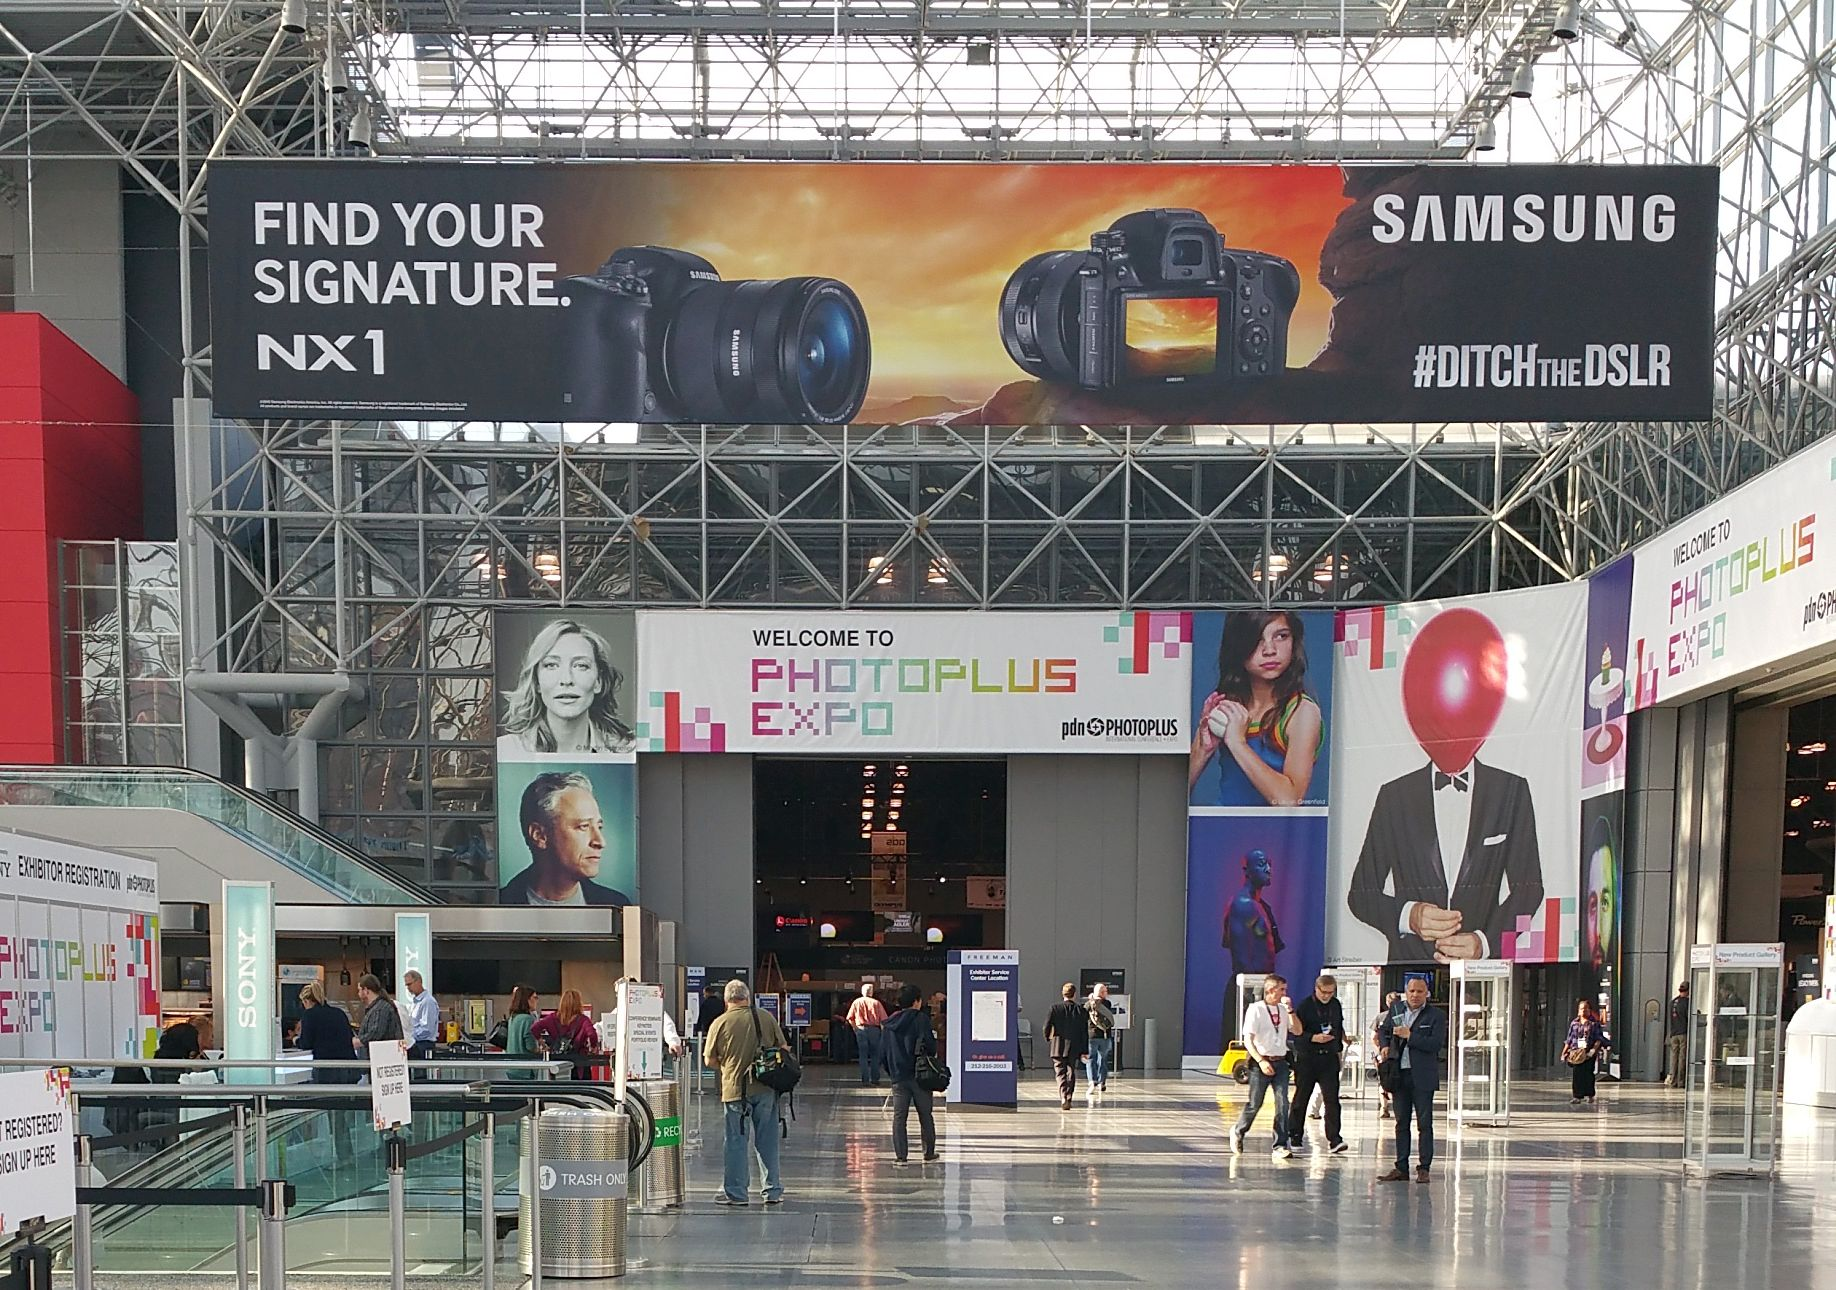 North America's Largest Photography Show Expands Overall Size with 100,000 Square Feet of Exhibit, Conference and Special Event Space Including 250 Exhibitors and 75 First-Time Exhibitors